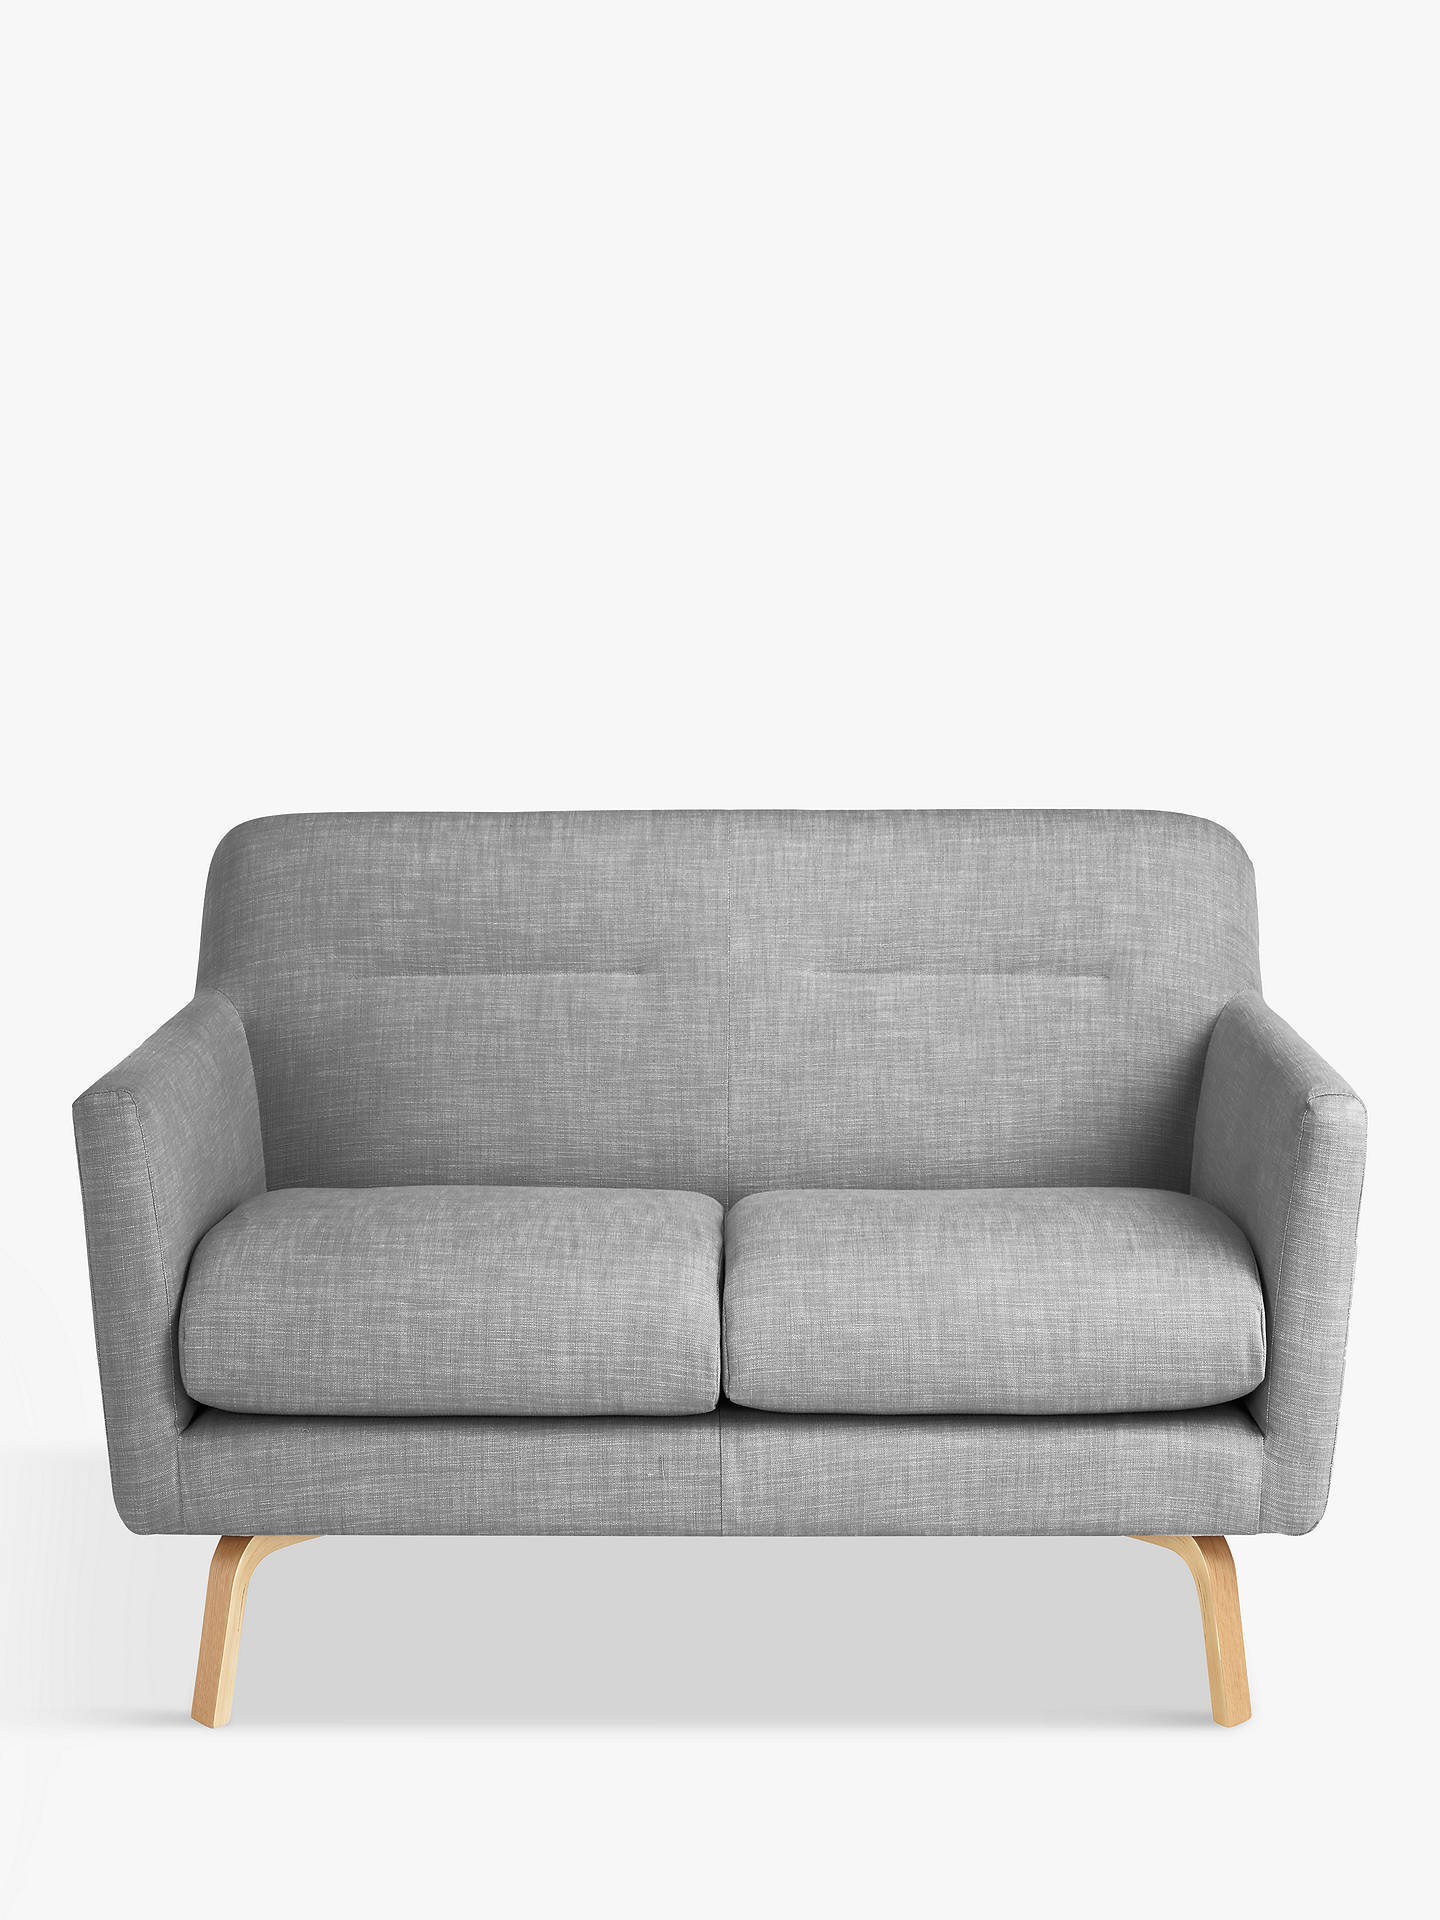 House by John Lewis Archie II Small 2 Seater Sofa, Light Leg, Saga Grey